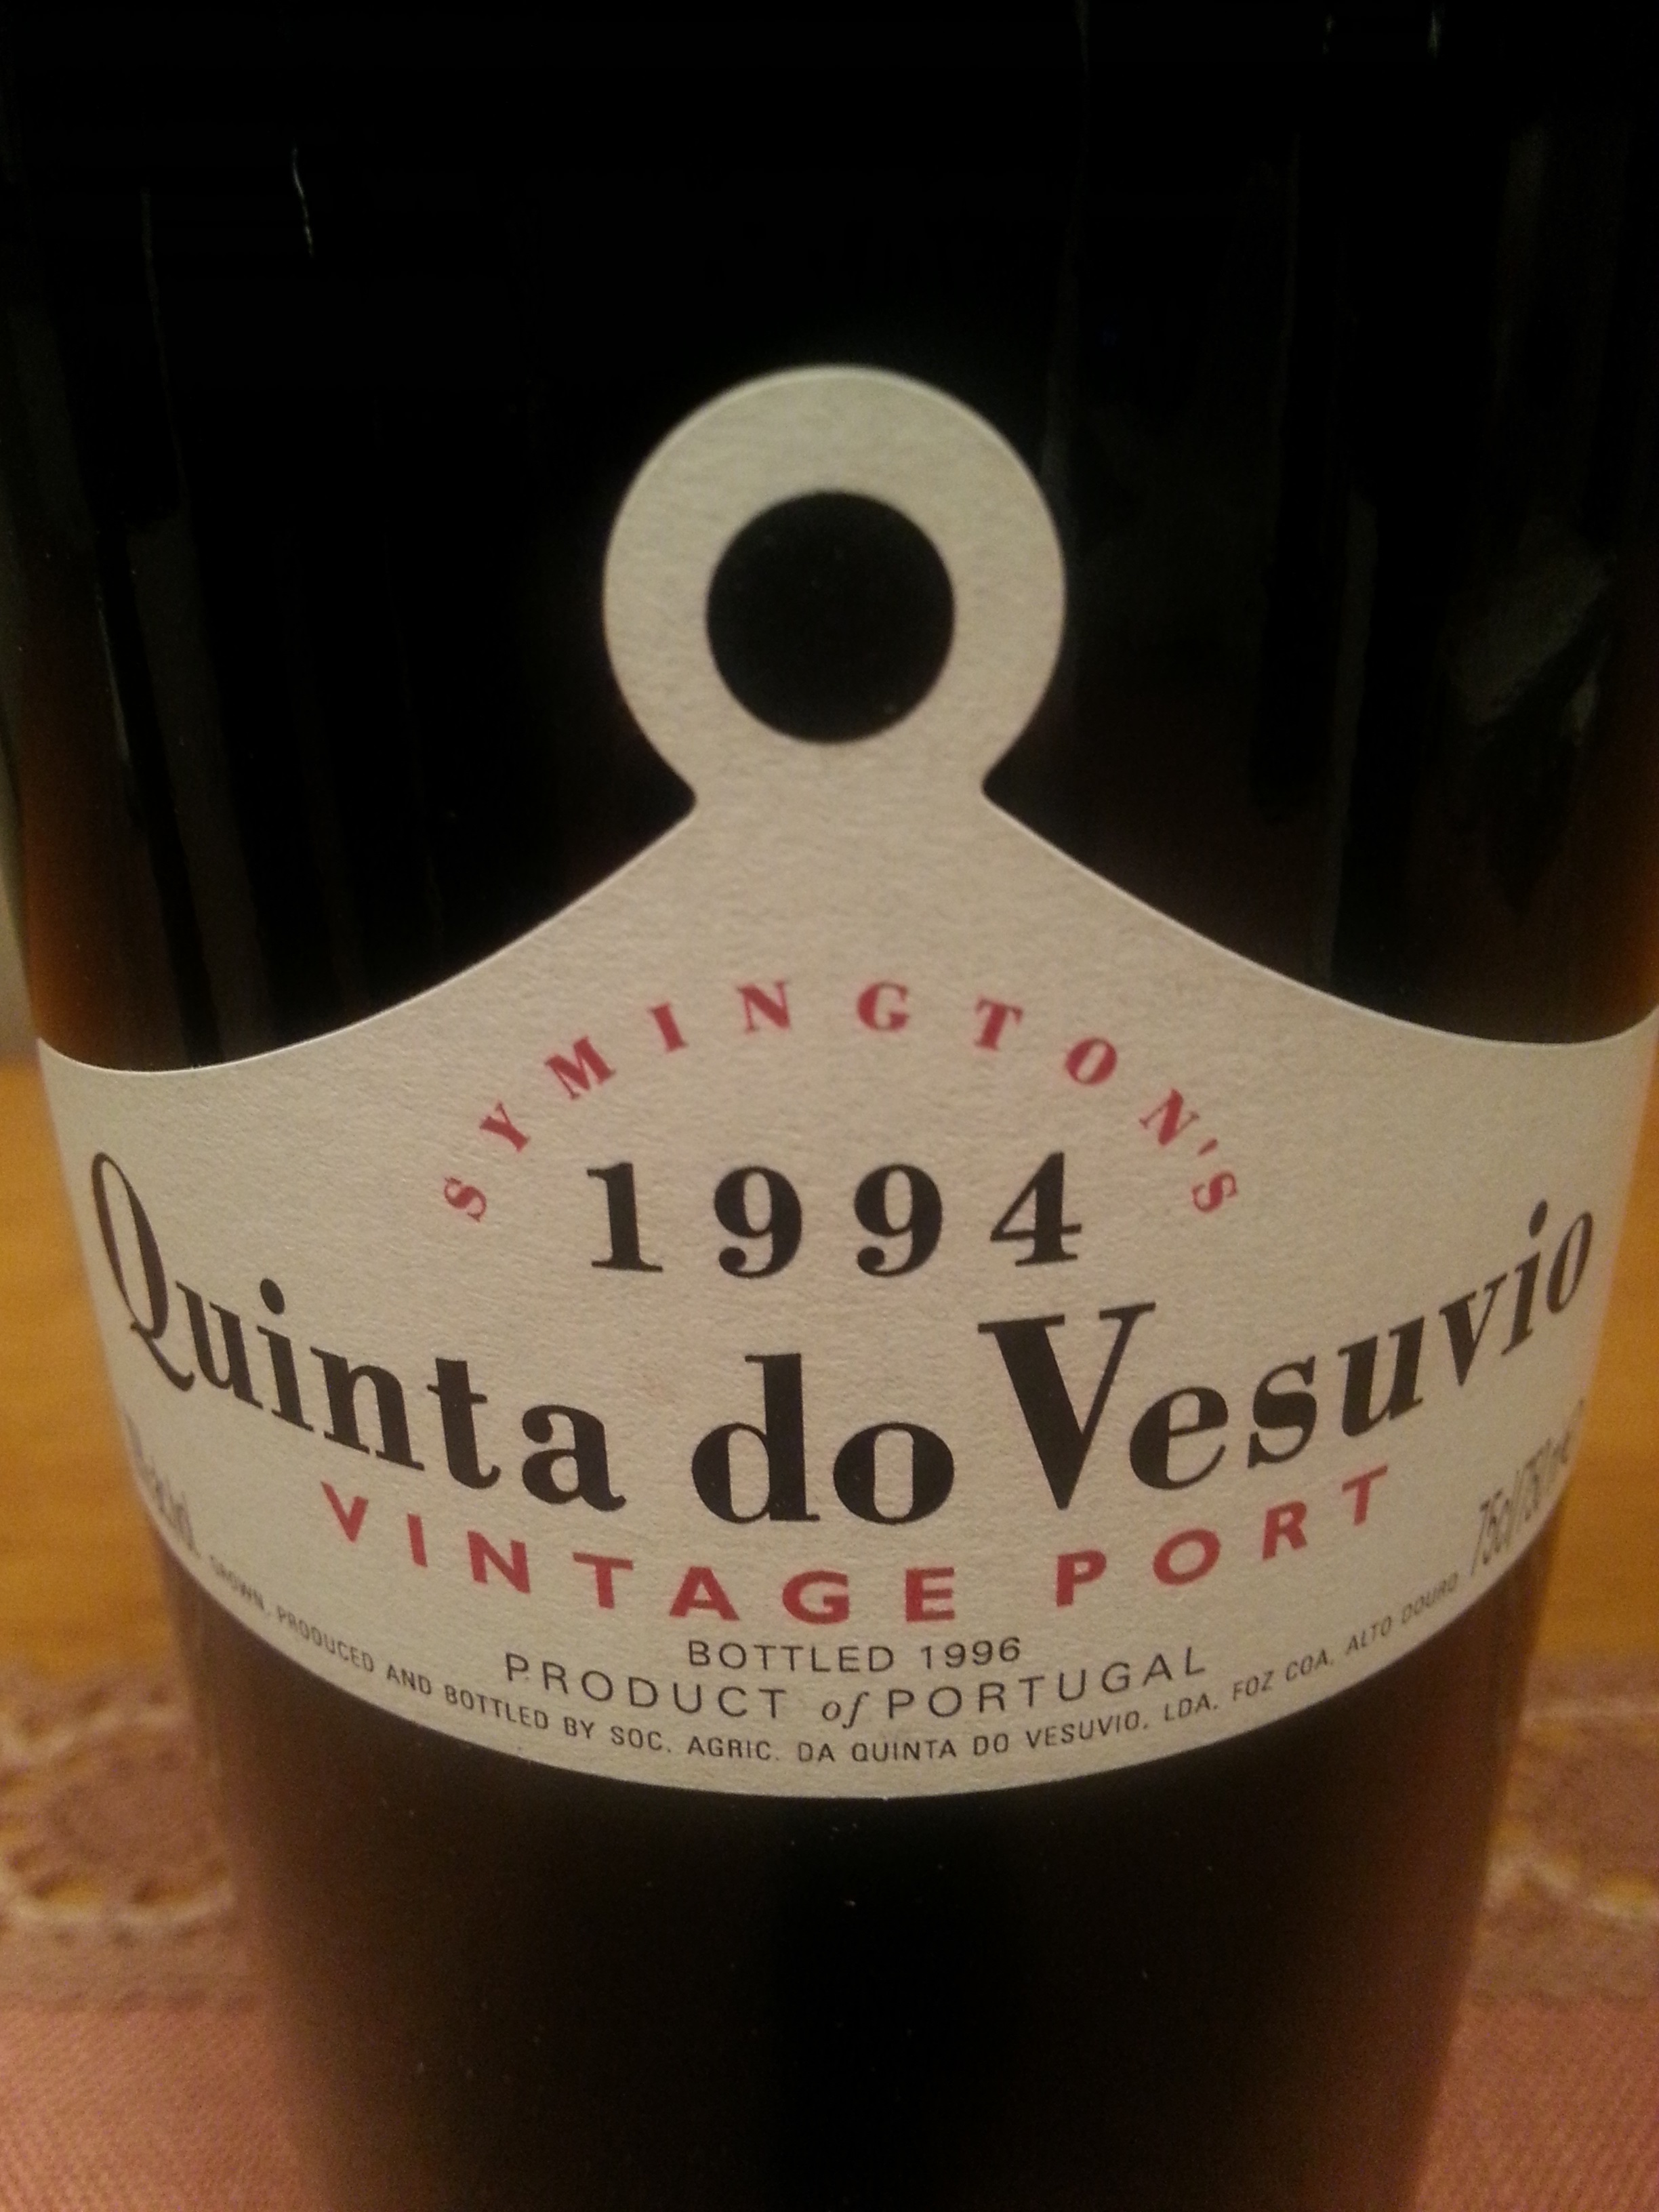 1994 Vintage Port | Quinta do Vesuvio